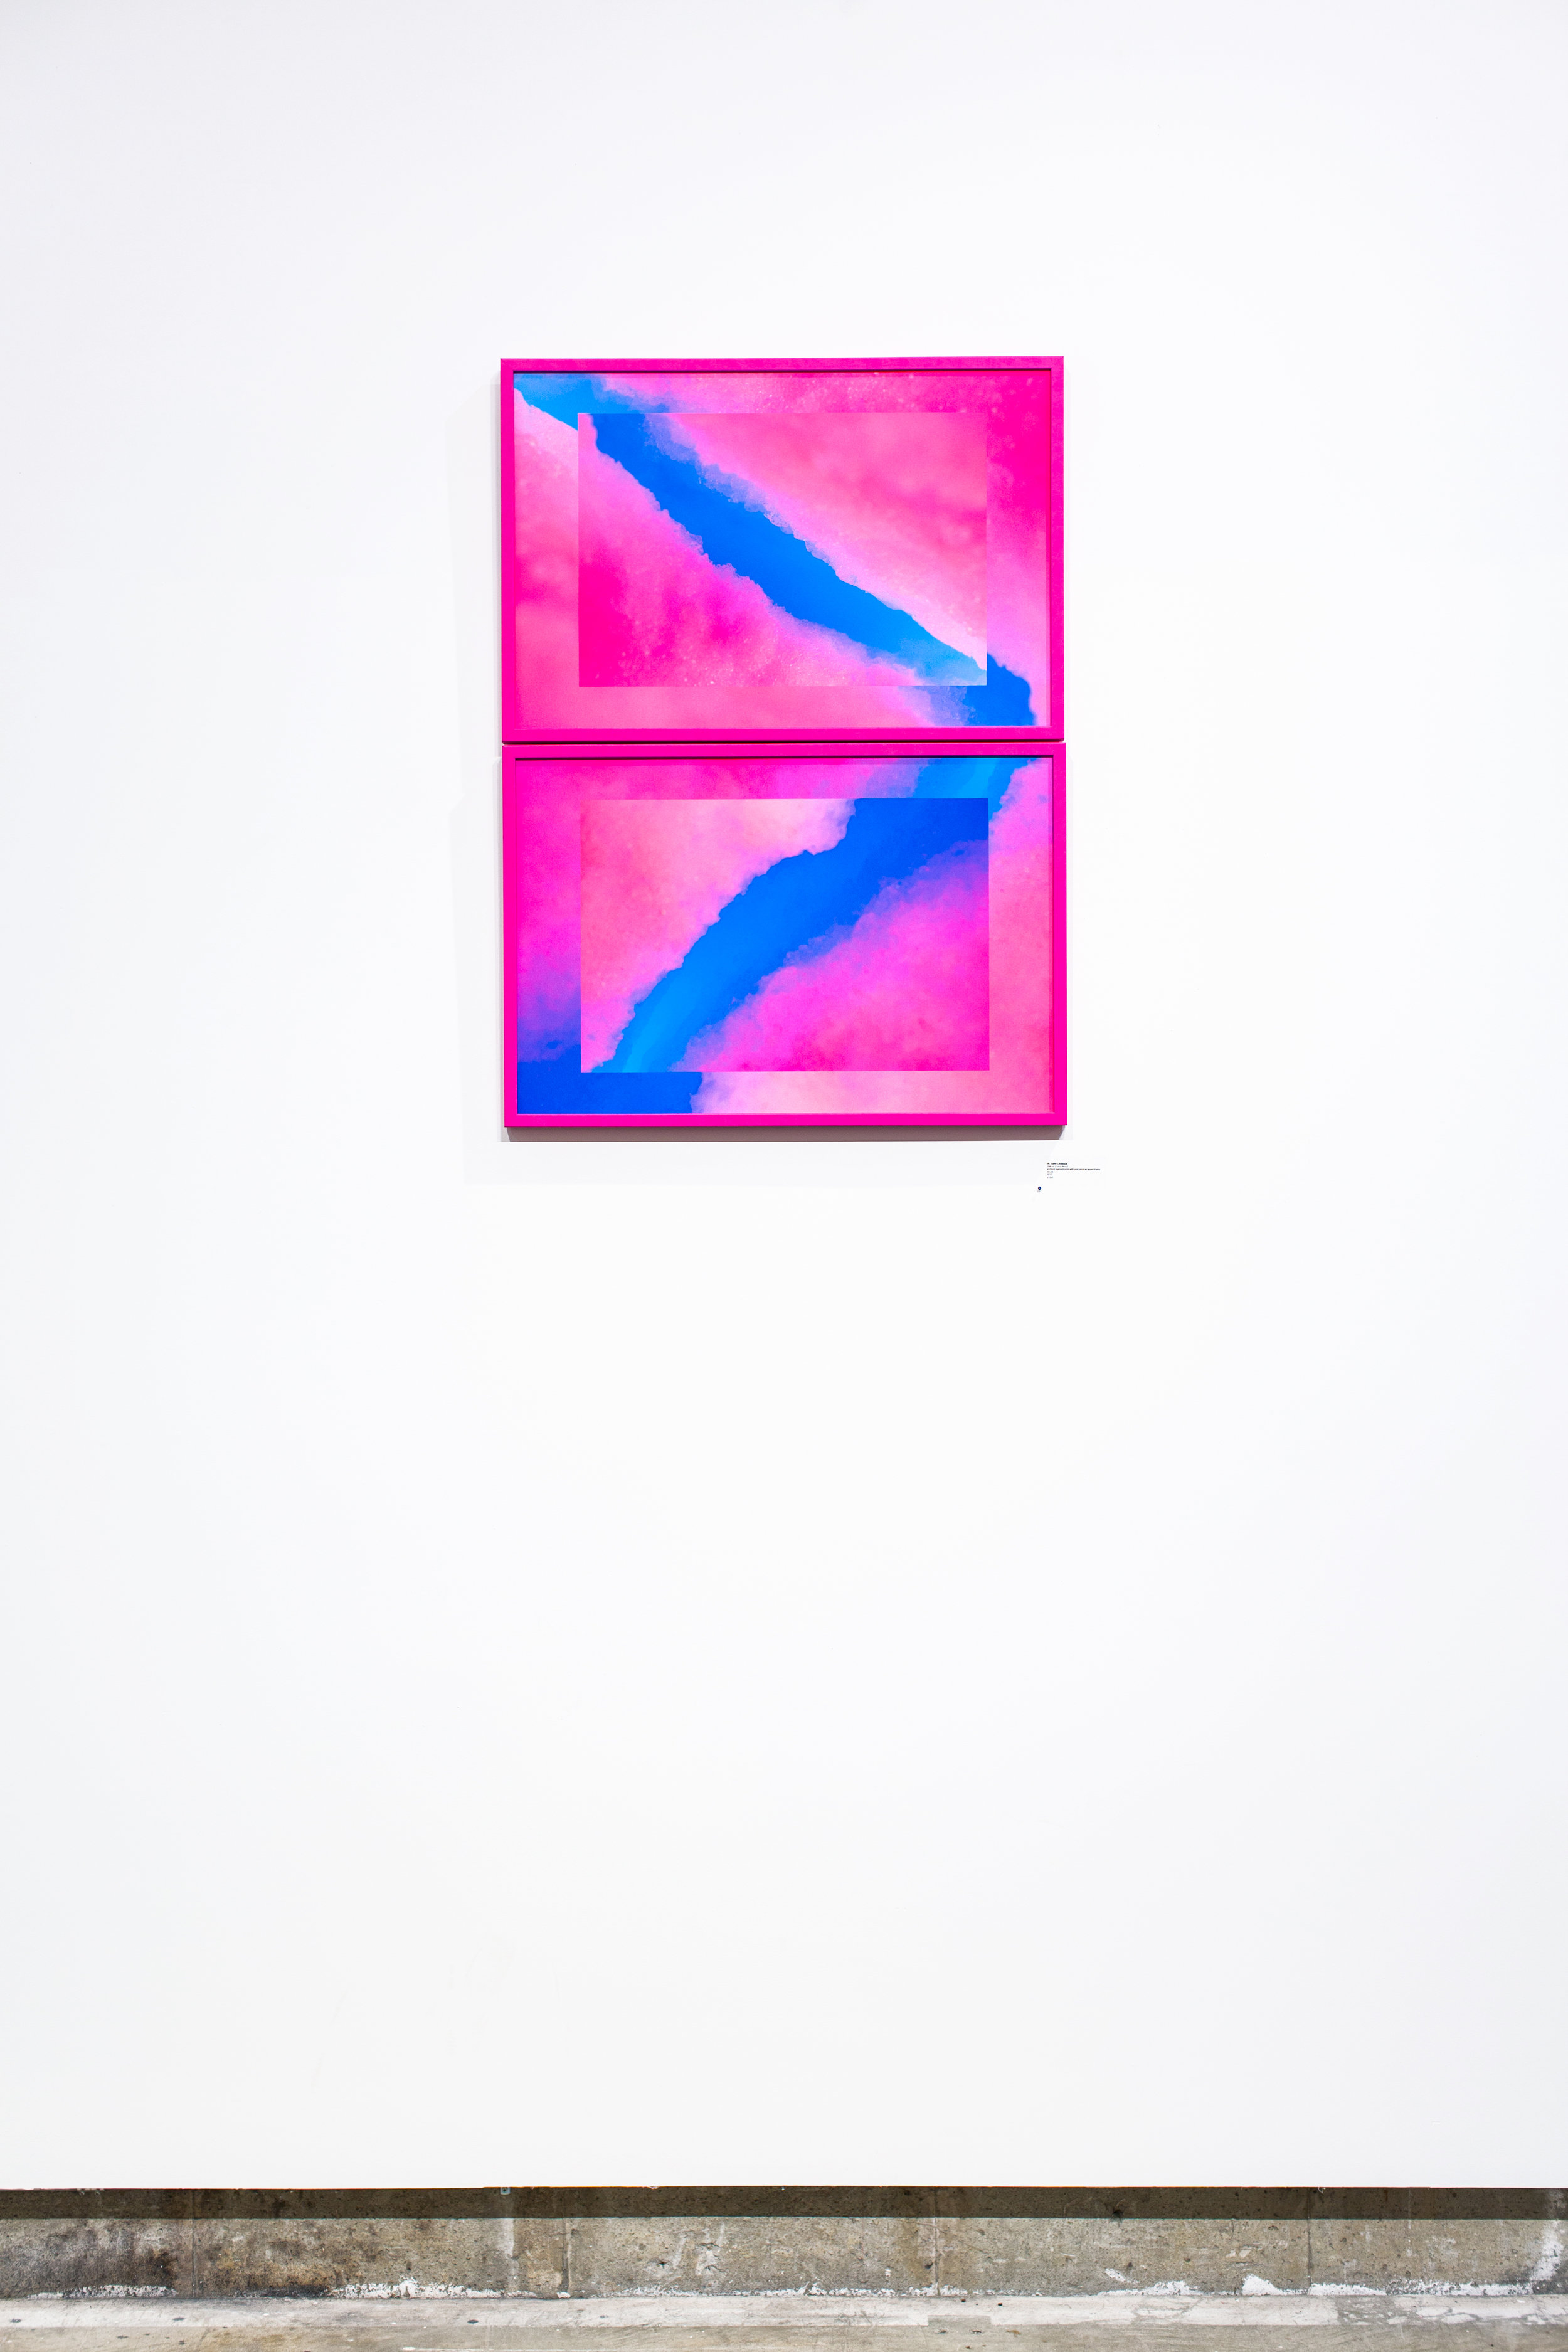 Justin Levesque, Diffuse (Color Bleed), archival pigment print with pink vinyl-wrapped frame, 30x48, 2017